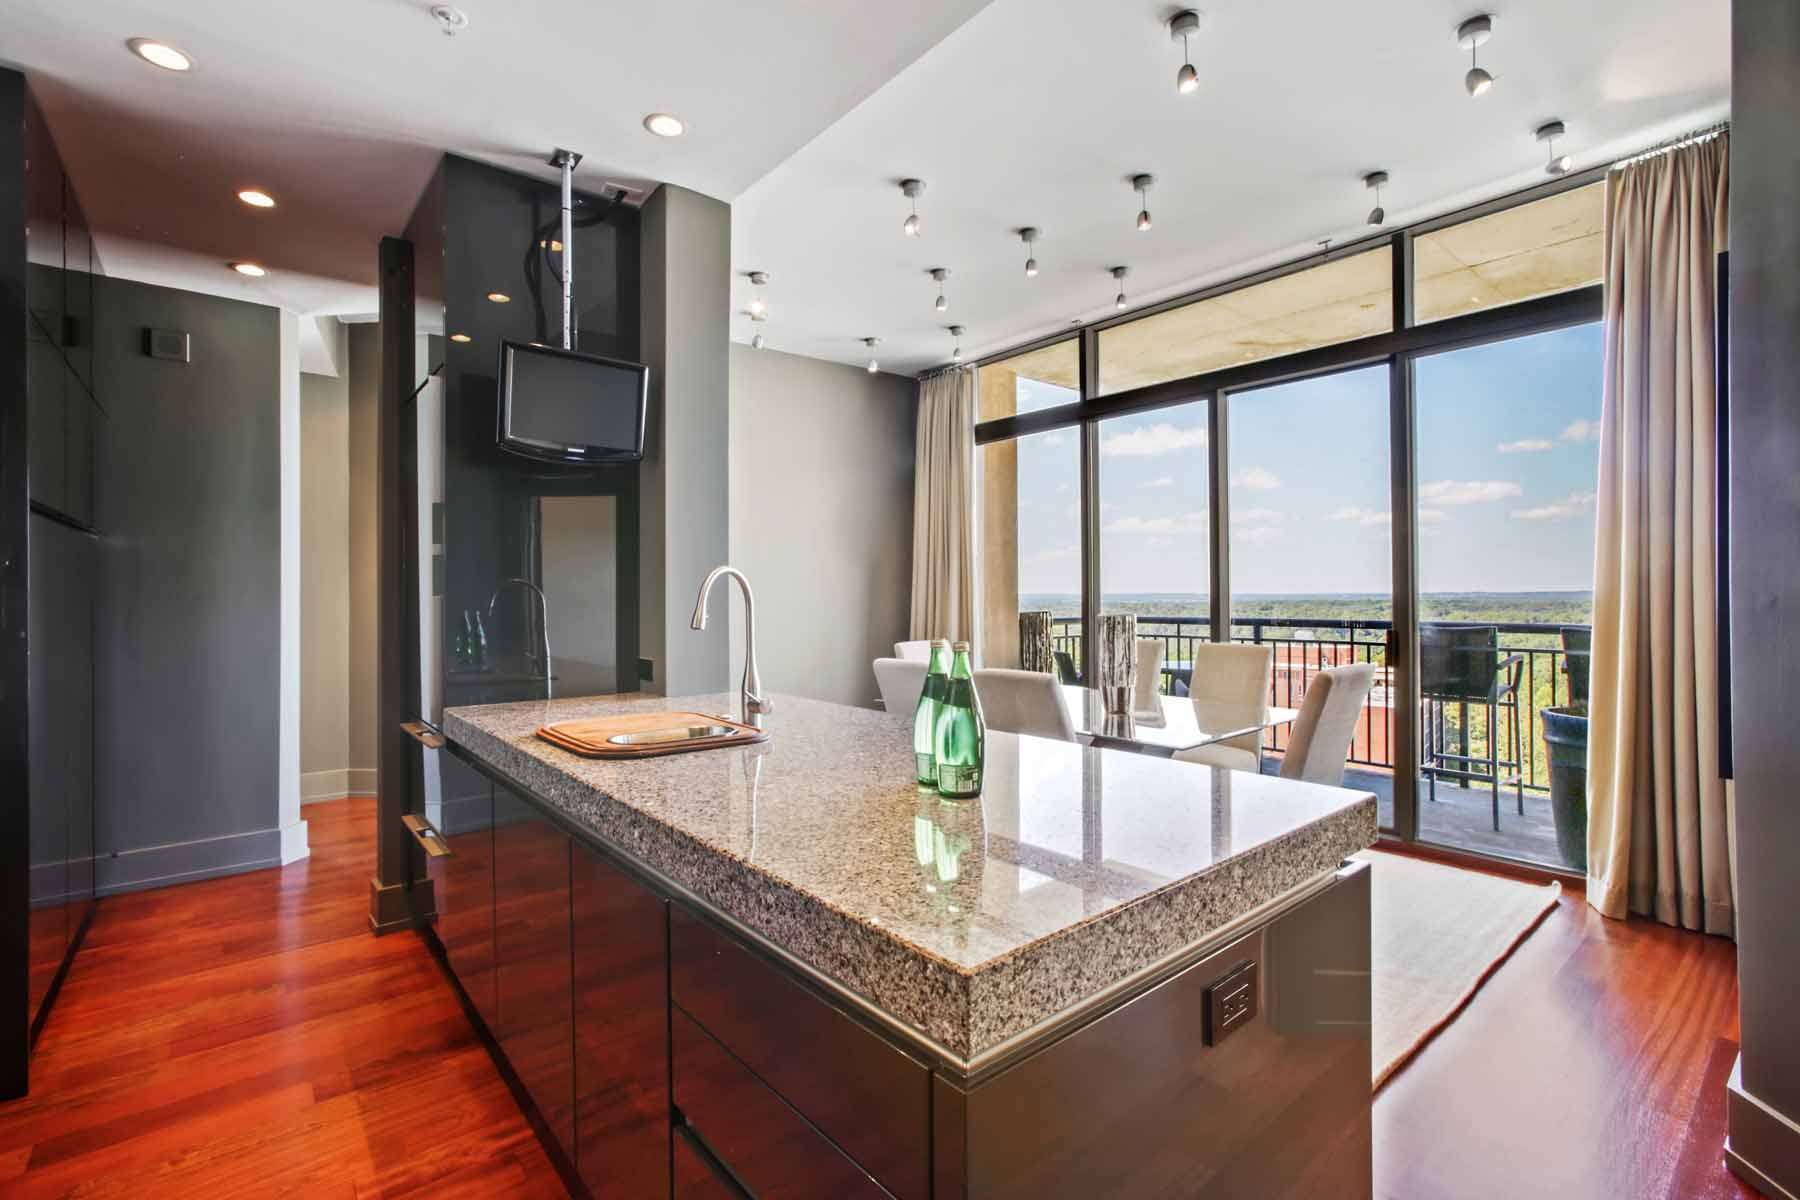 Additional photo for property listing at Stunning Custom Three Bedroom in Ovation 3040 Peachtree Road NW No. 1510 Atlanta, Georgia 30305 États-Unis